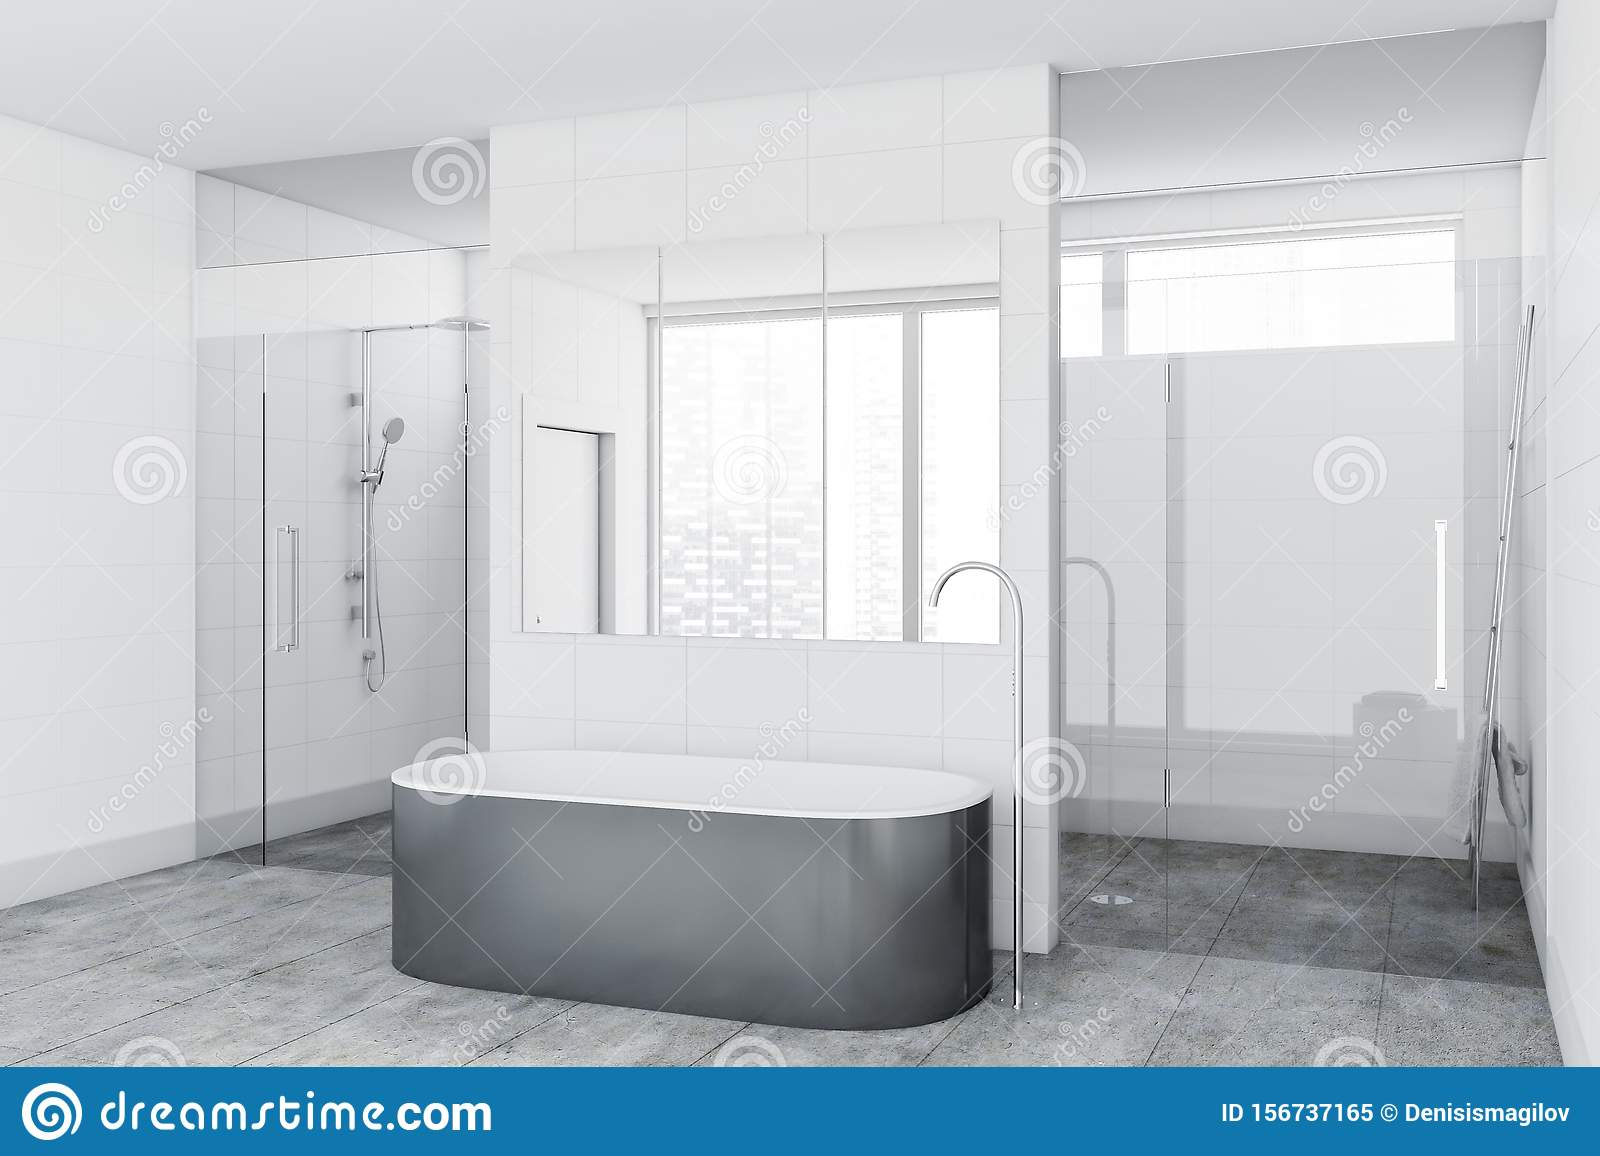 White Tile Bathroom Corner With Tub And Shower Stock